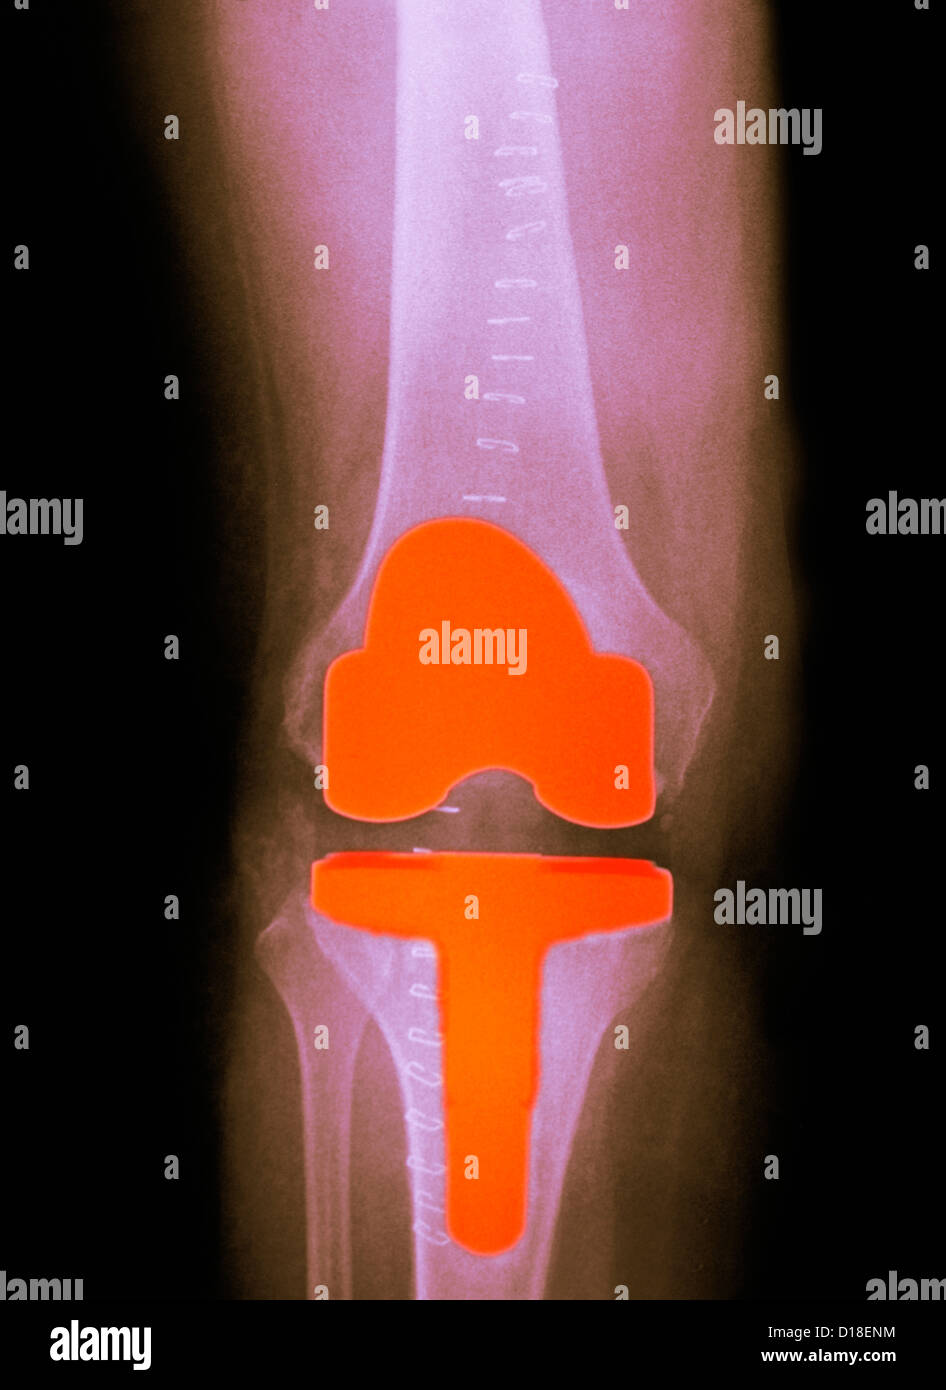 knee replacement in a 61 year old female - Stock Image